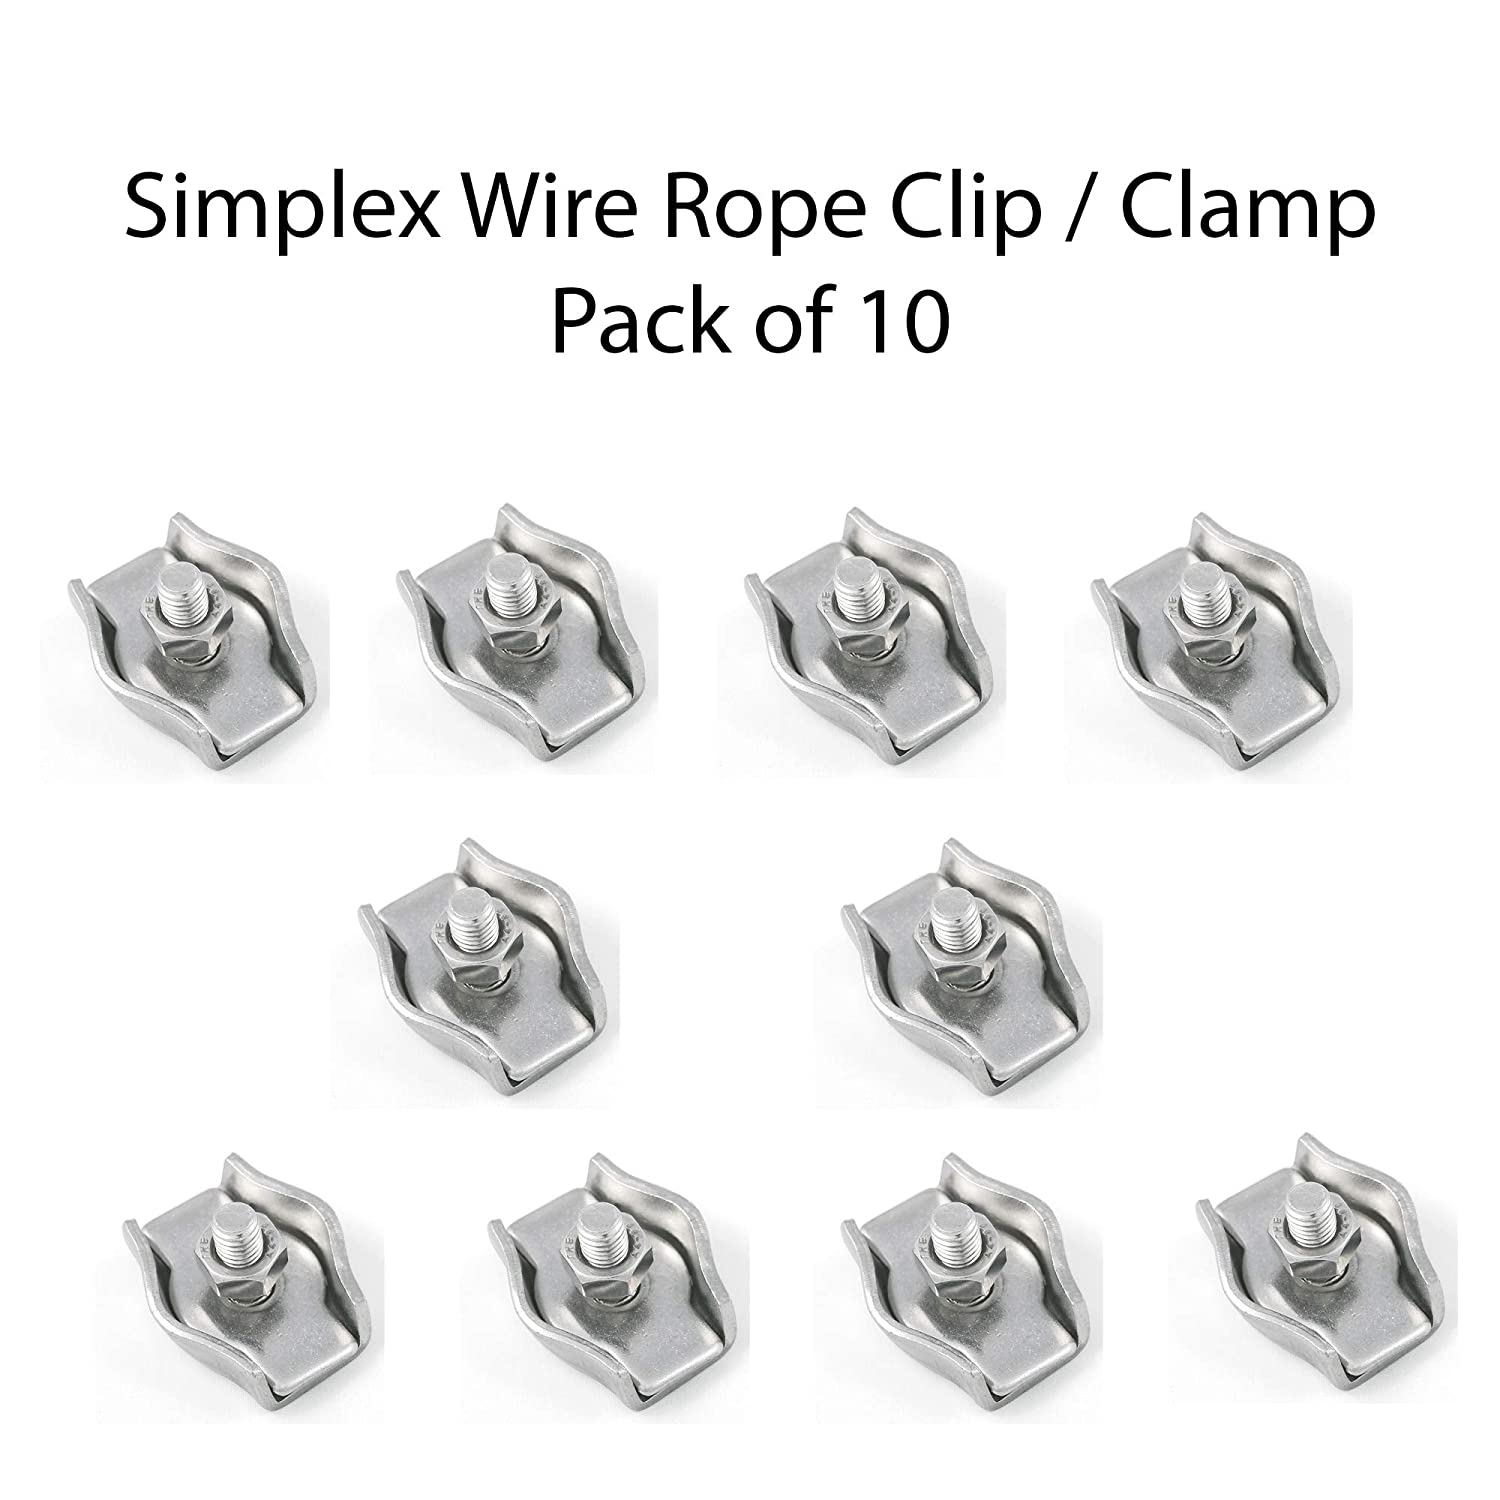 Wire Rope Cable 1mm, 10m Stainless Steel Wire Rope 7 x 7 Cable Clip Grip Single Double Bolt for Wire Clamps Thimble Marine Grade